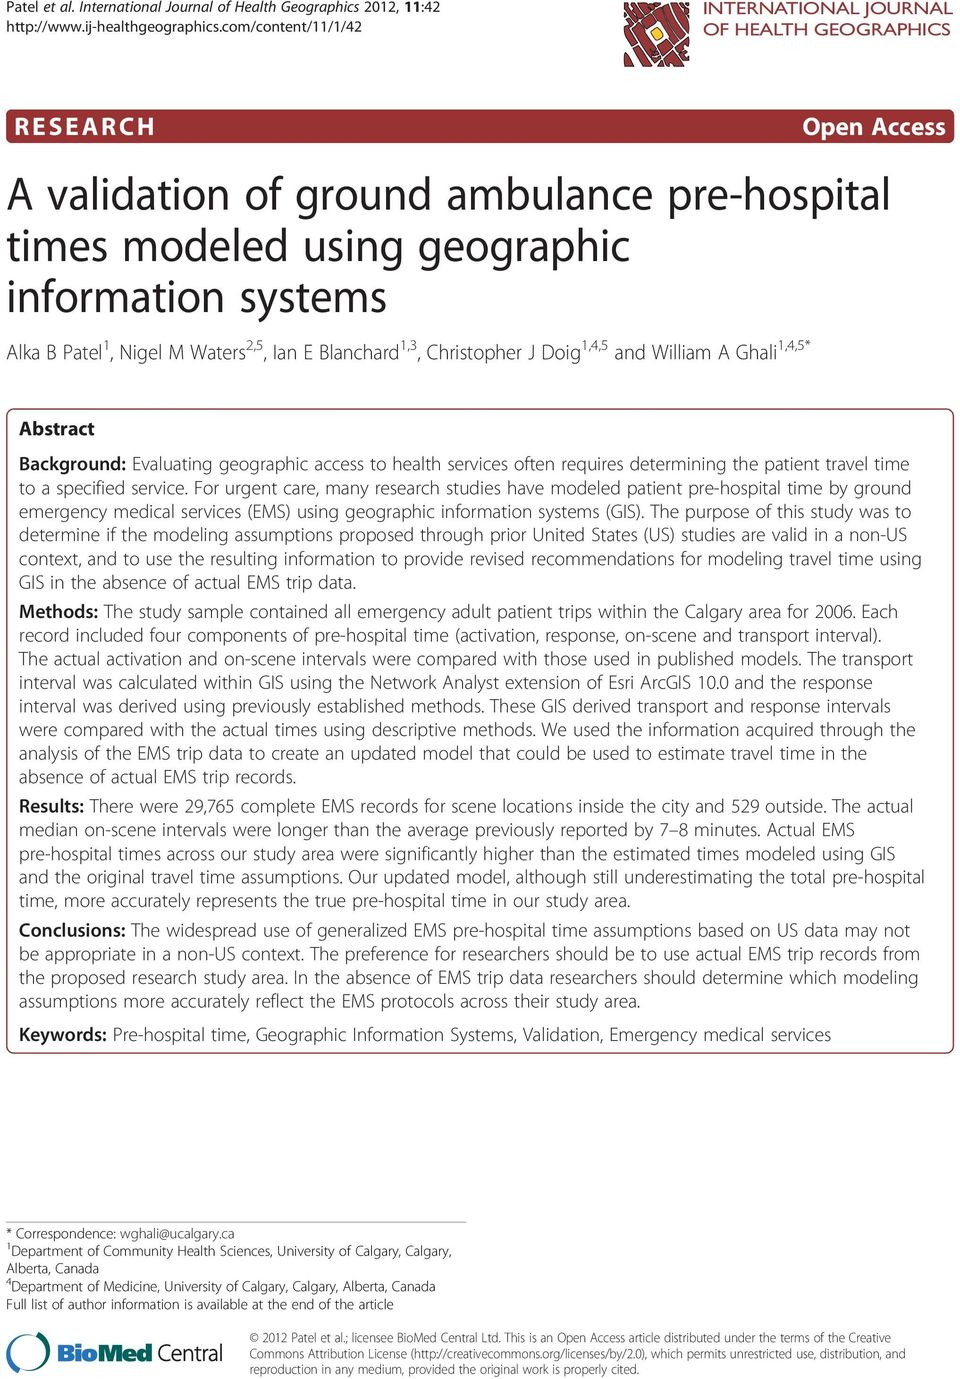 information systems Alka B Patel 1, Nigel M Waters 2,5, Ian E Blanchard 1,3, Christopher J Doig 1,4,5 and William A Ghali 1,4,5* Abstract Background: Evaluating geographic access to health services